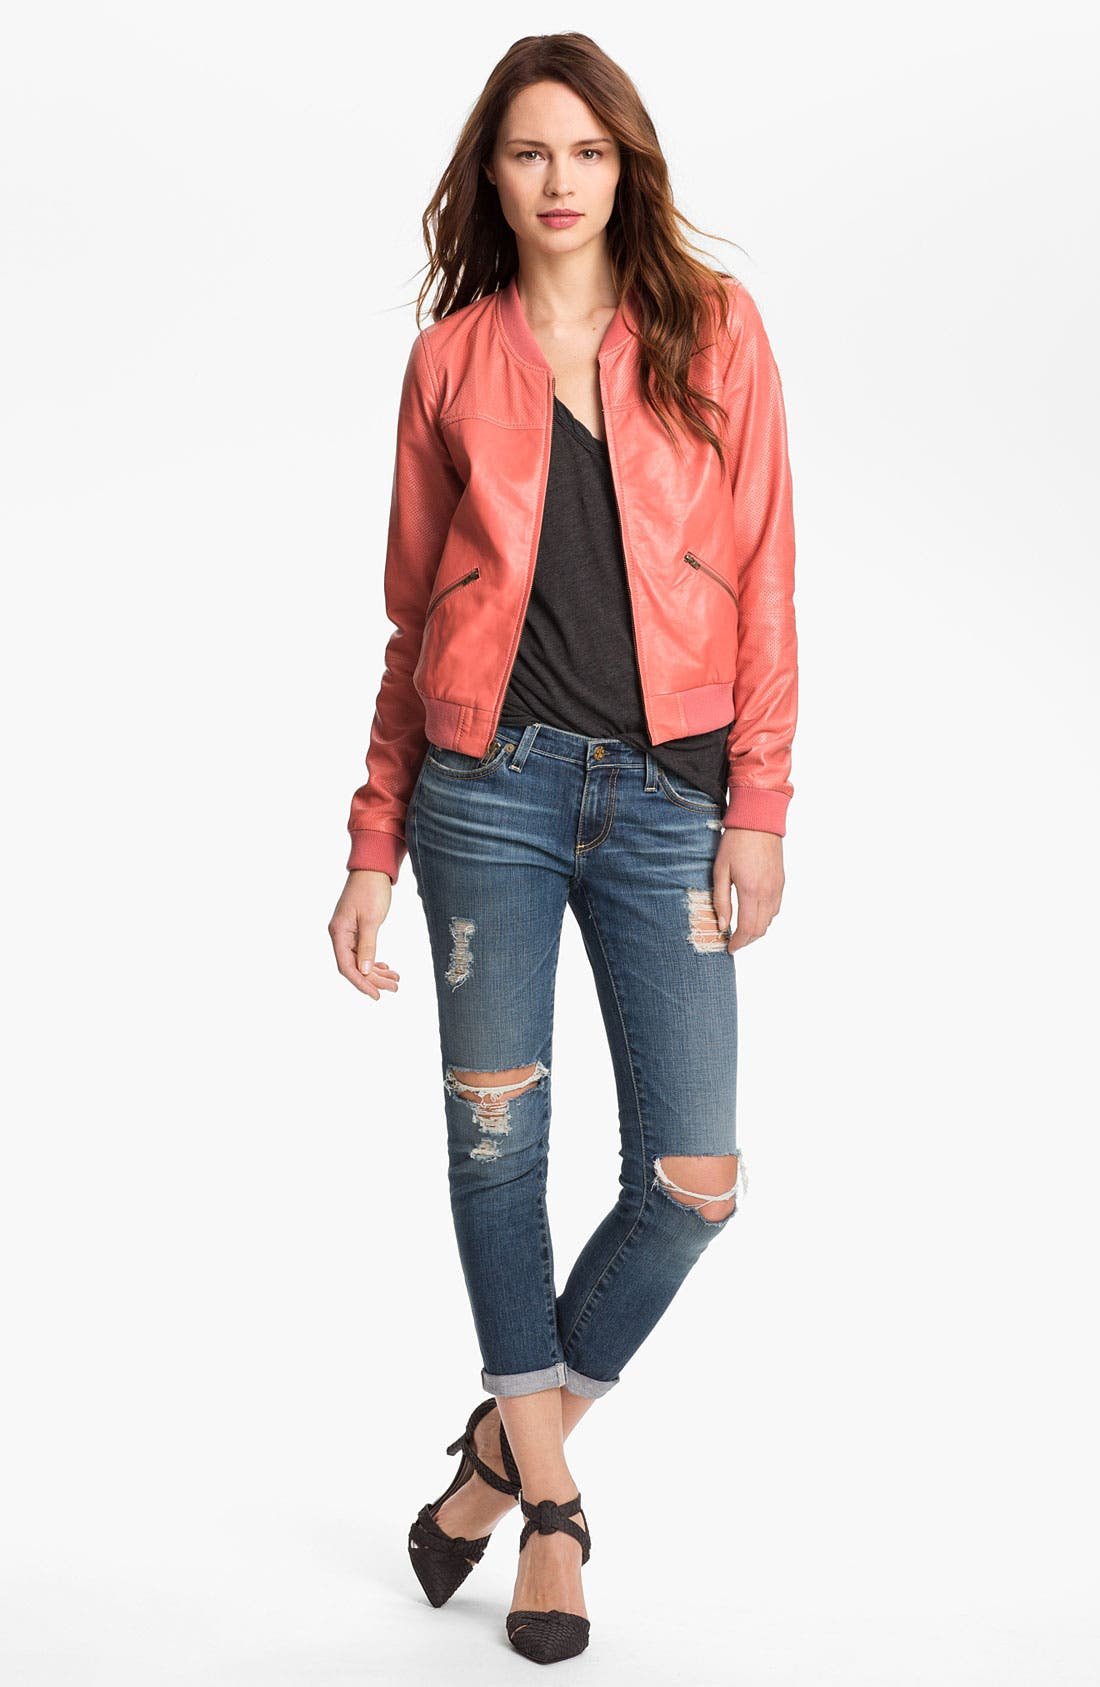 Main Image - Trouvé Bomber, James Perse Tee & AG Jeans